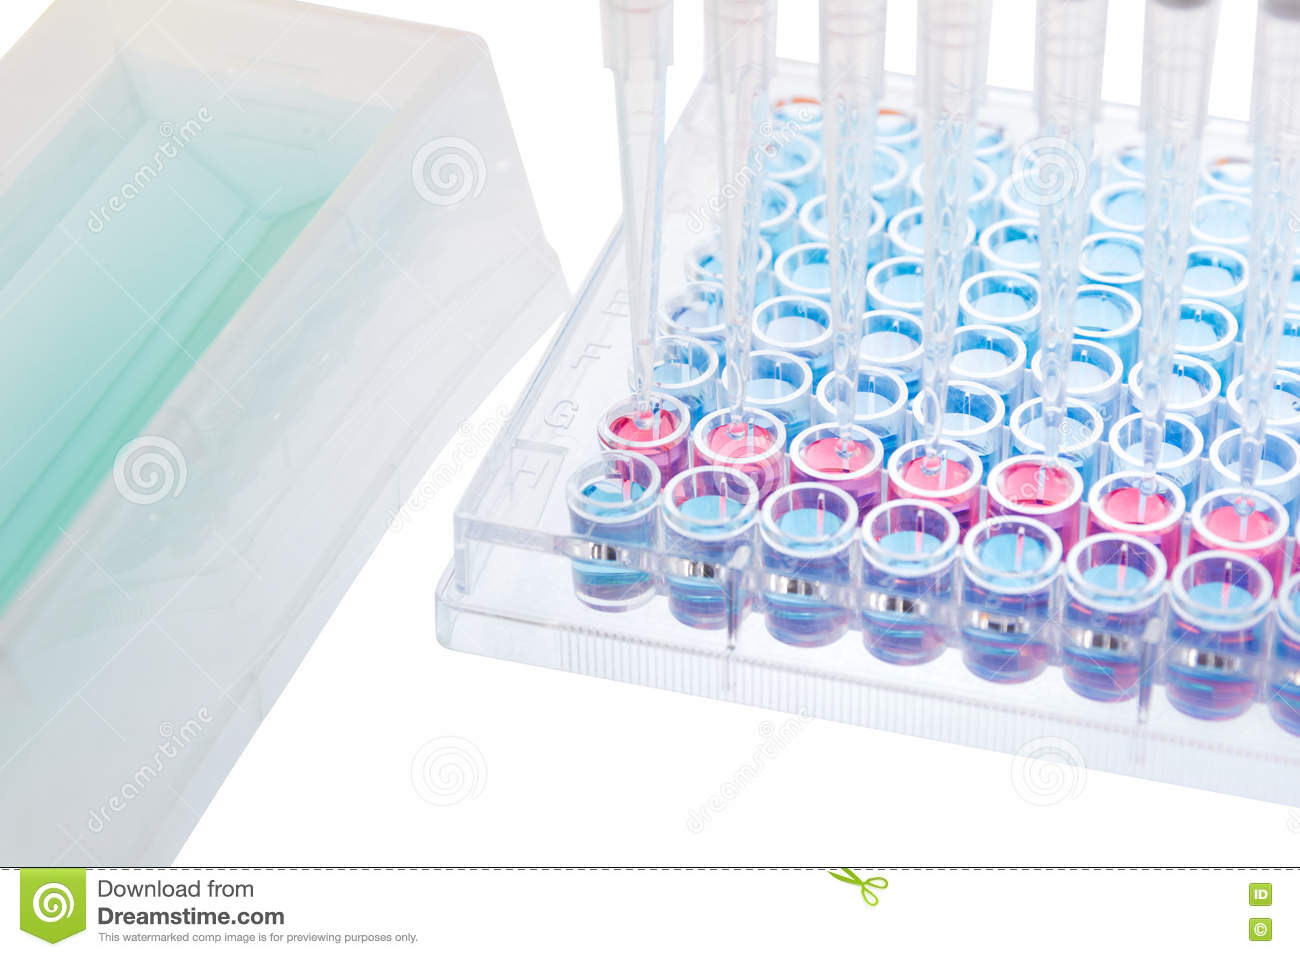 Test Sample Research Test Lab Elisa Stock Photo - Image: 73183925